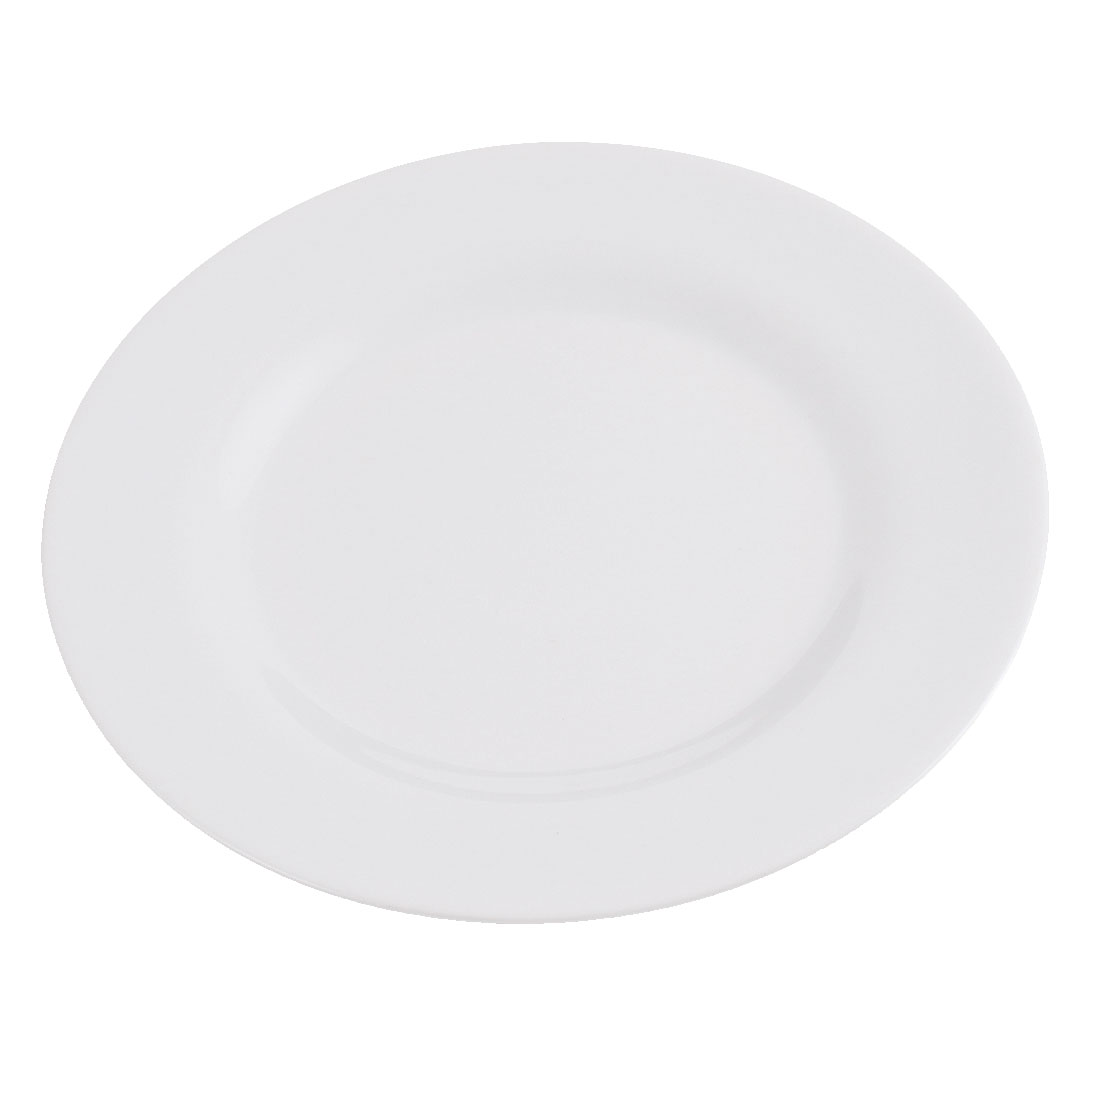 Plastic Round Shape Dinner Food Dessert Plate Dish 6 Inch Dia White